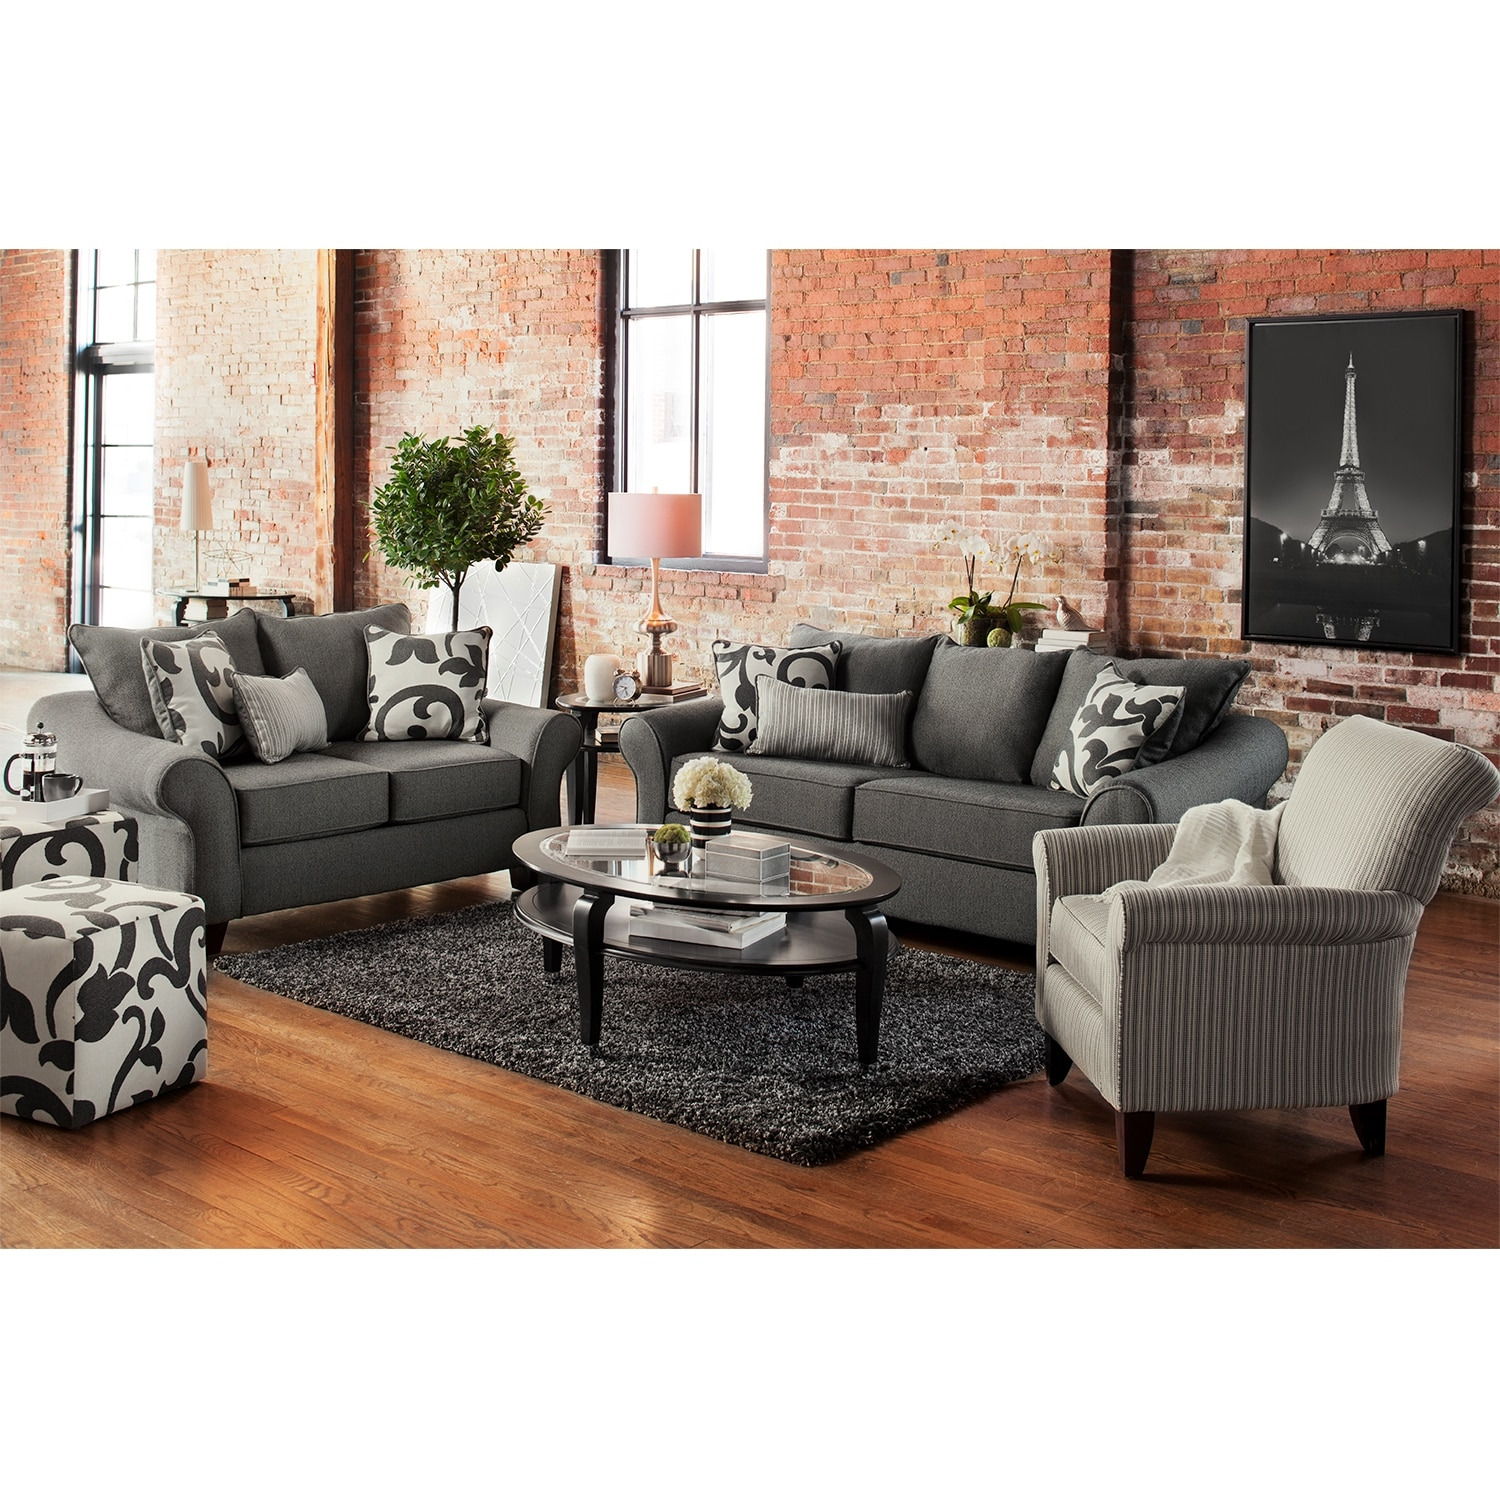 Colette sofa loveseat and accent chair set gray for The room furniture